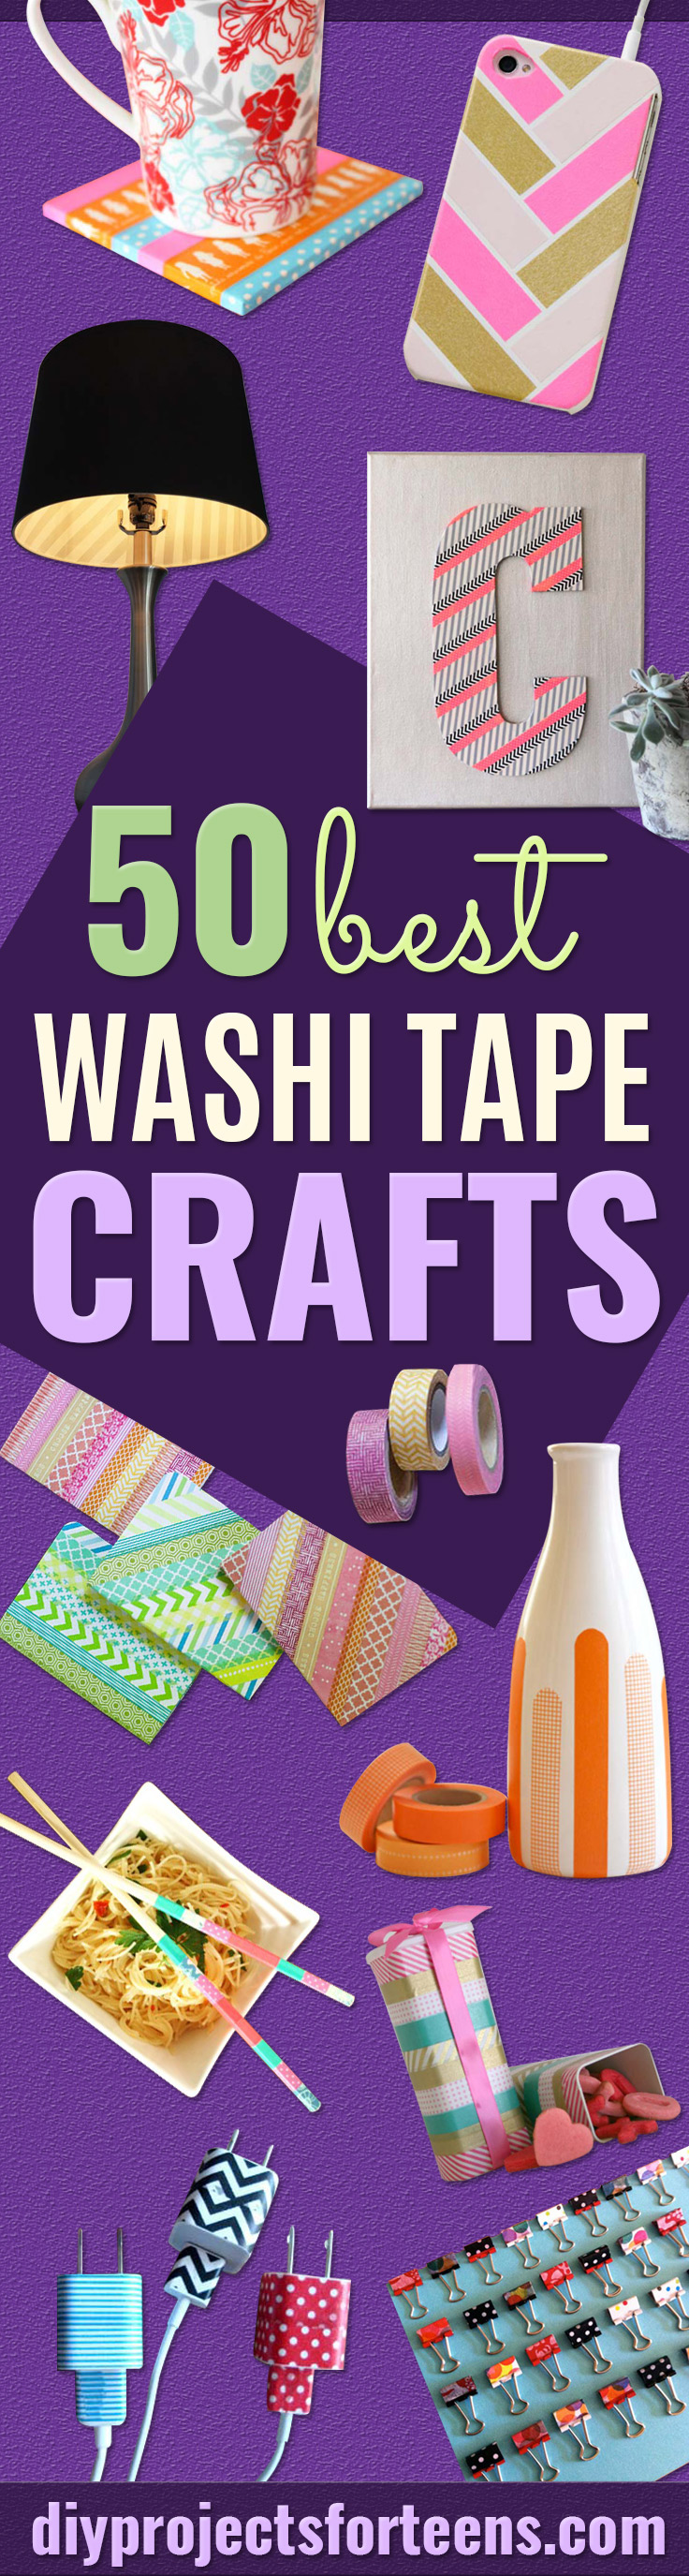 Washi Tape Crafts 50 Best Washi Tape Crafts  Diy Projects For Teens